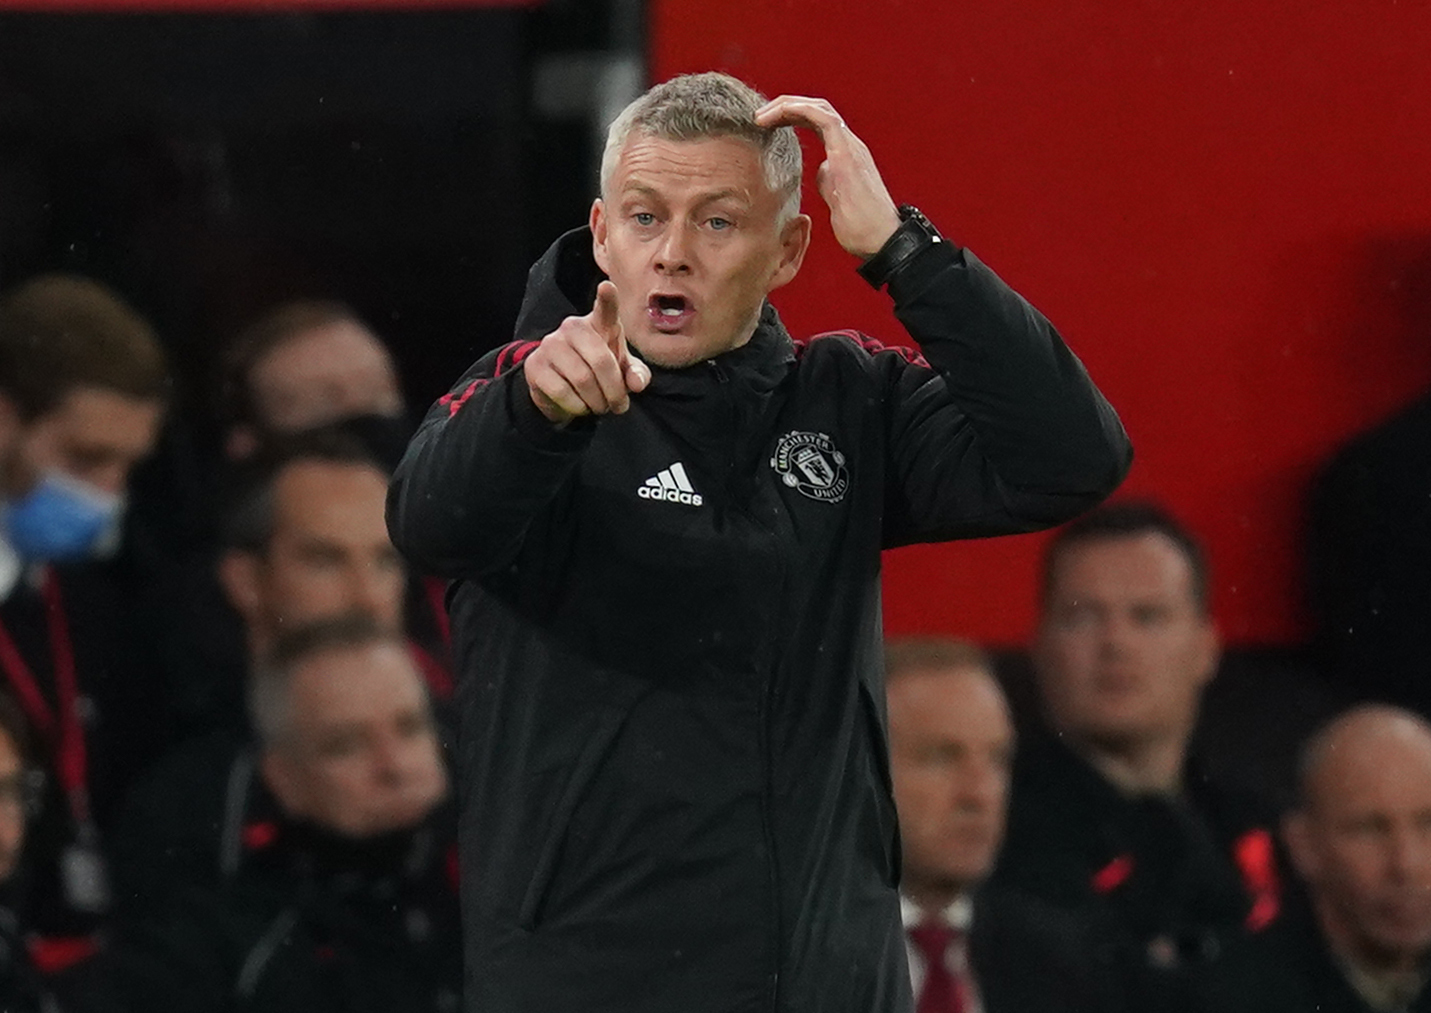 Clock ticking for Manchester United boss Ole Gunnar Solskjaer after Liverpool thumping